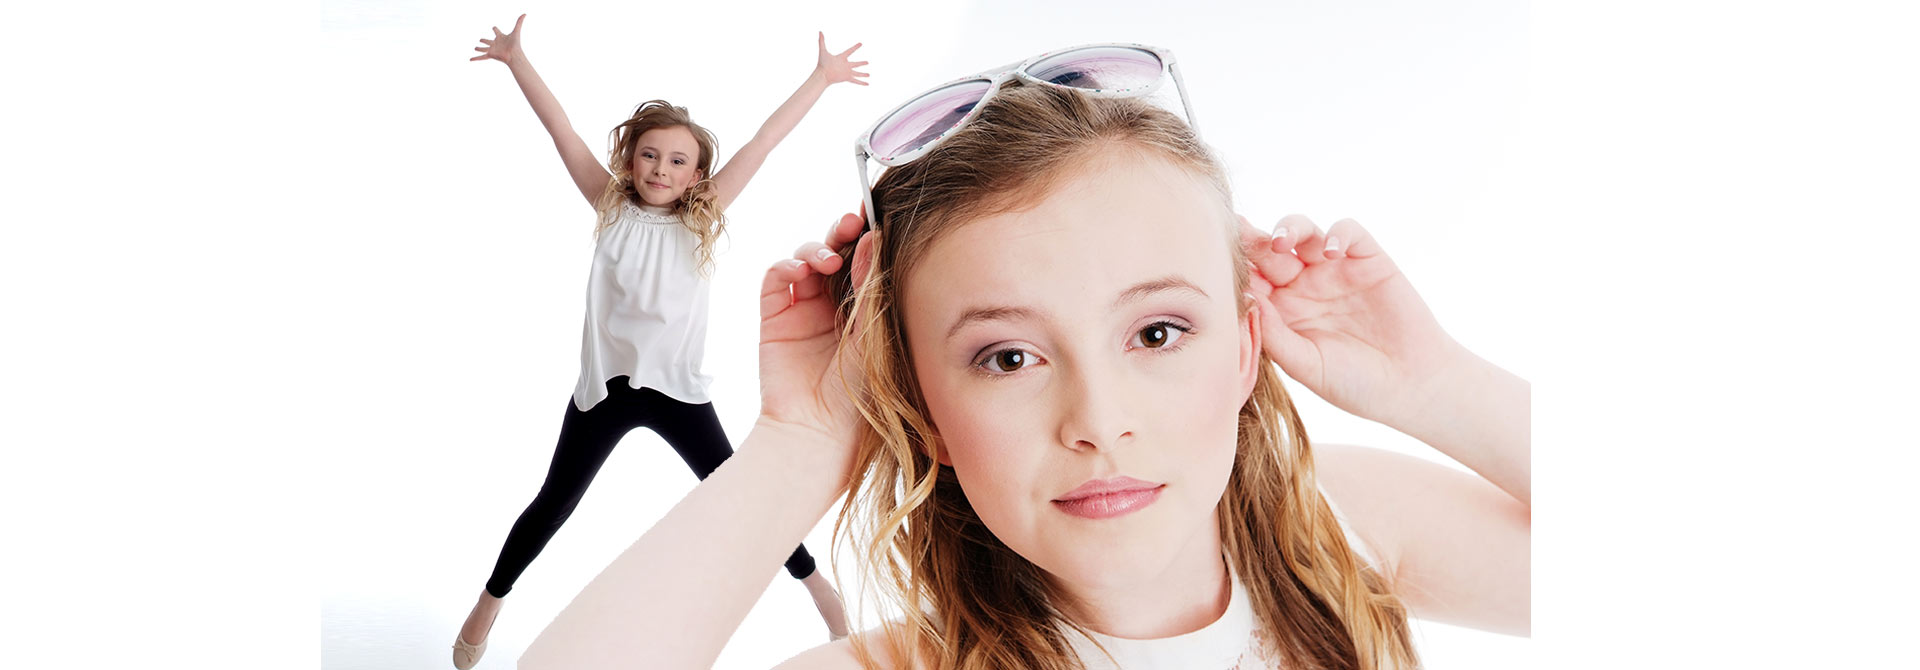 childrens-photographer-worcestershire